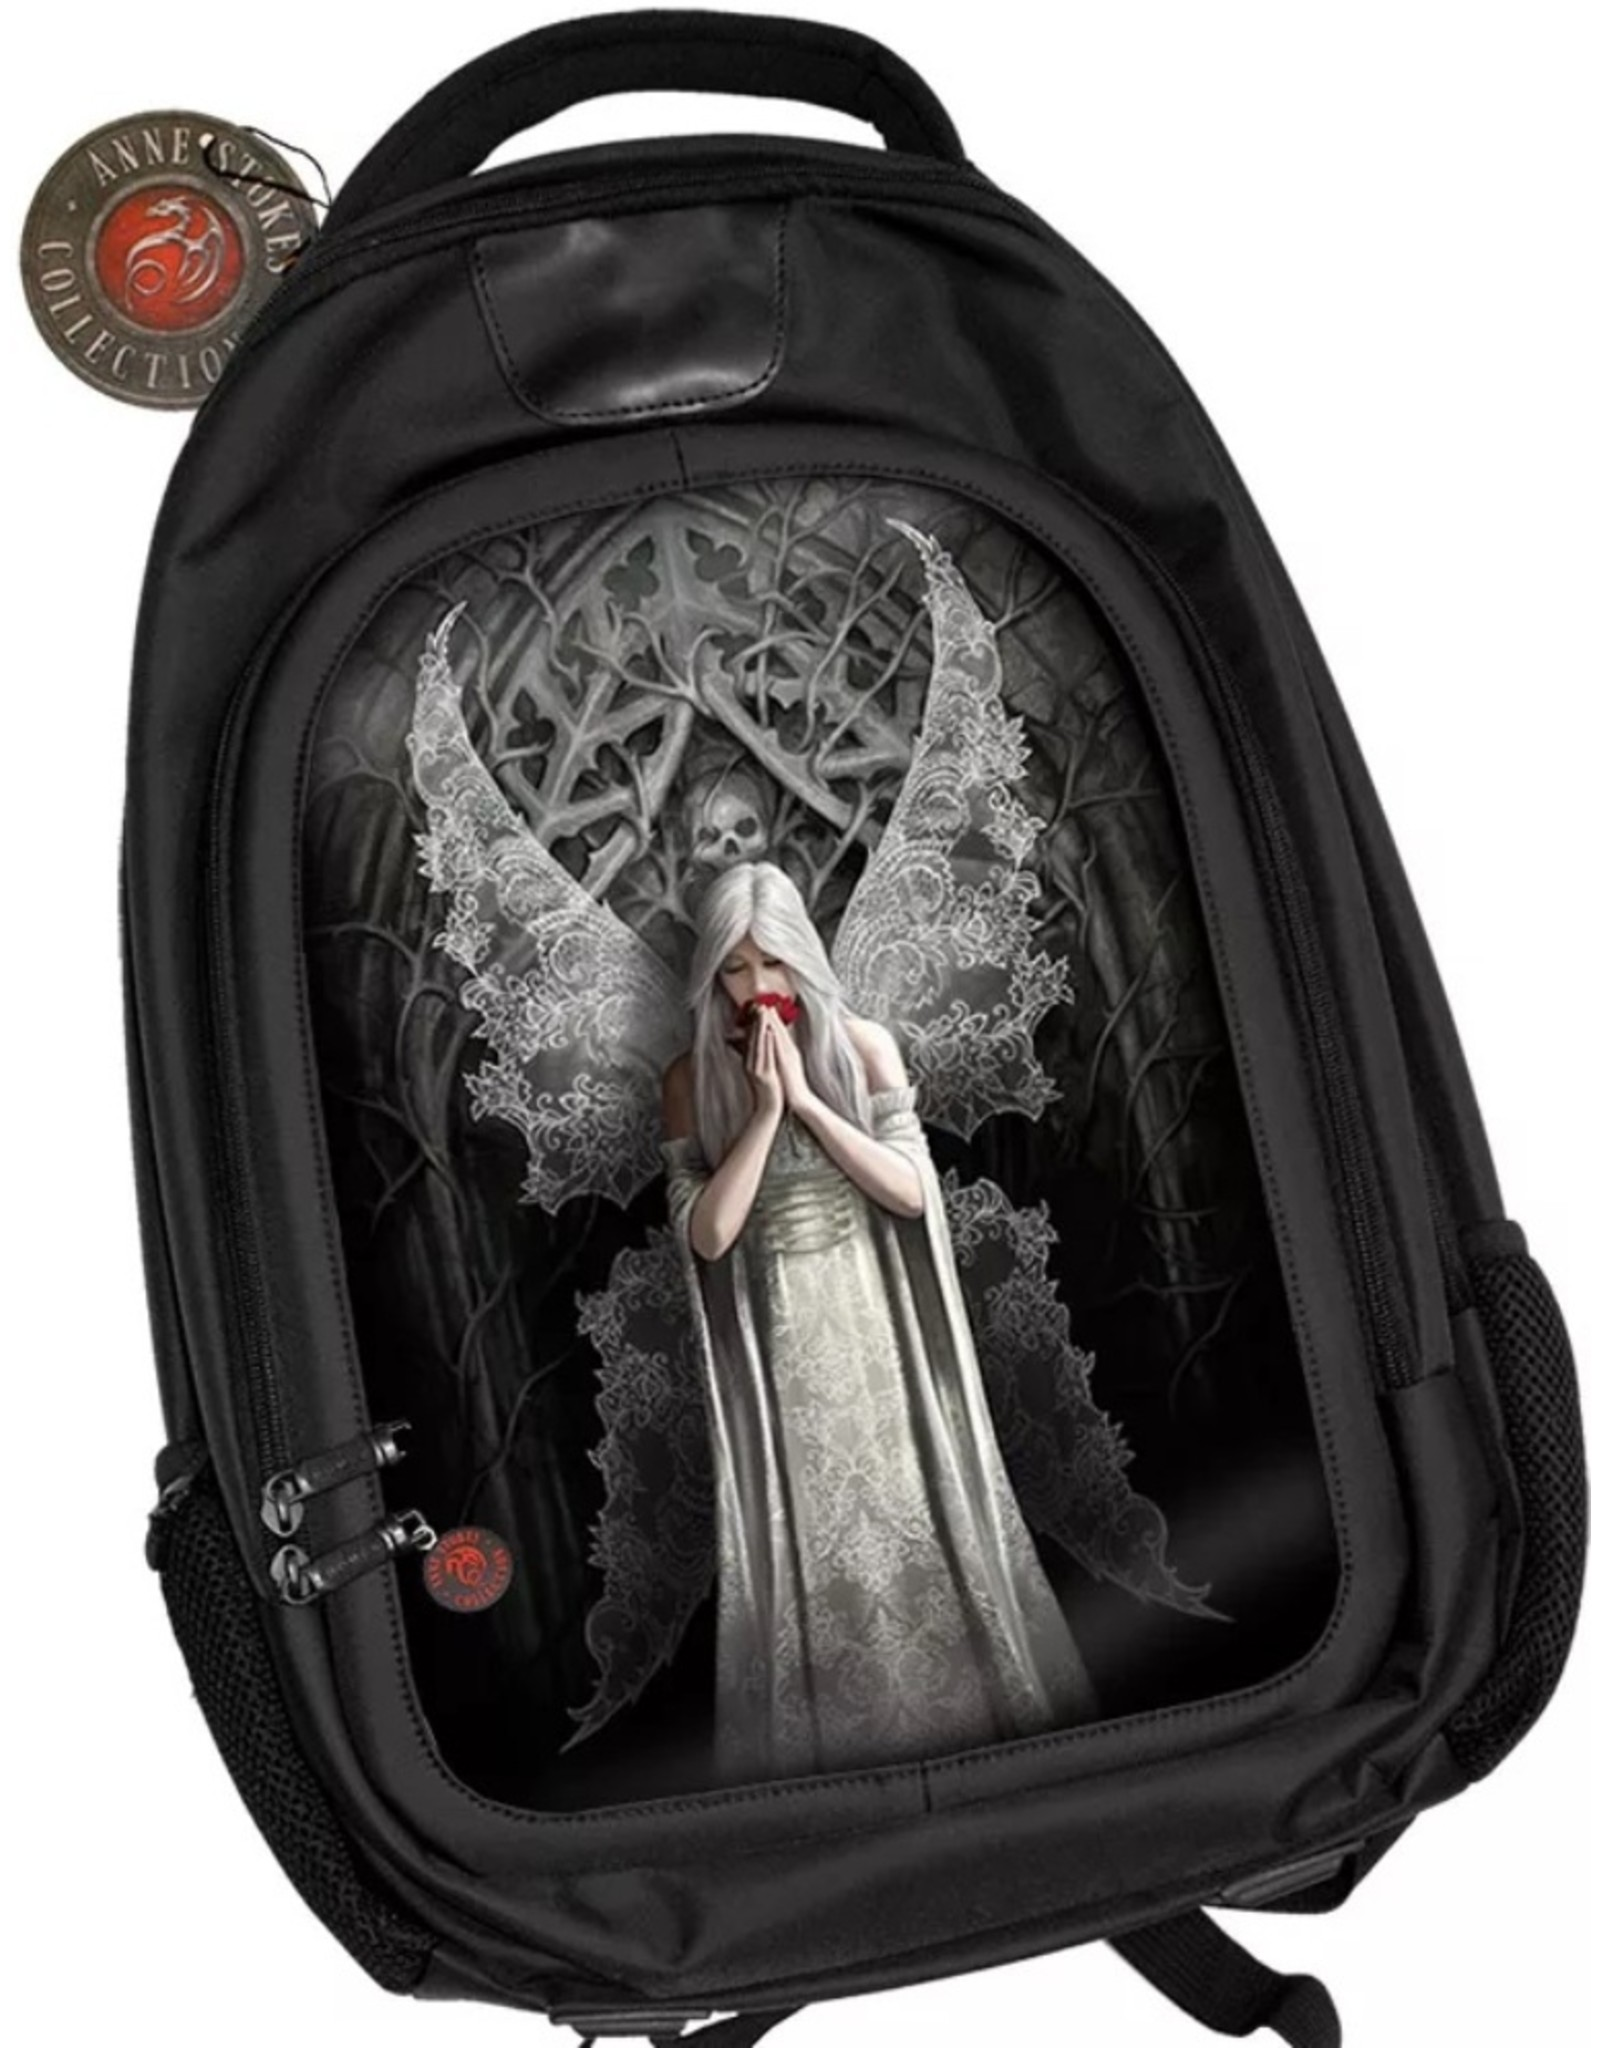 Anne Stokes Gothic bags Steampunk bags - Anne Stokes 3D lenticular backpack Only Love Remains